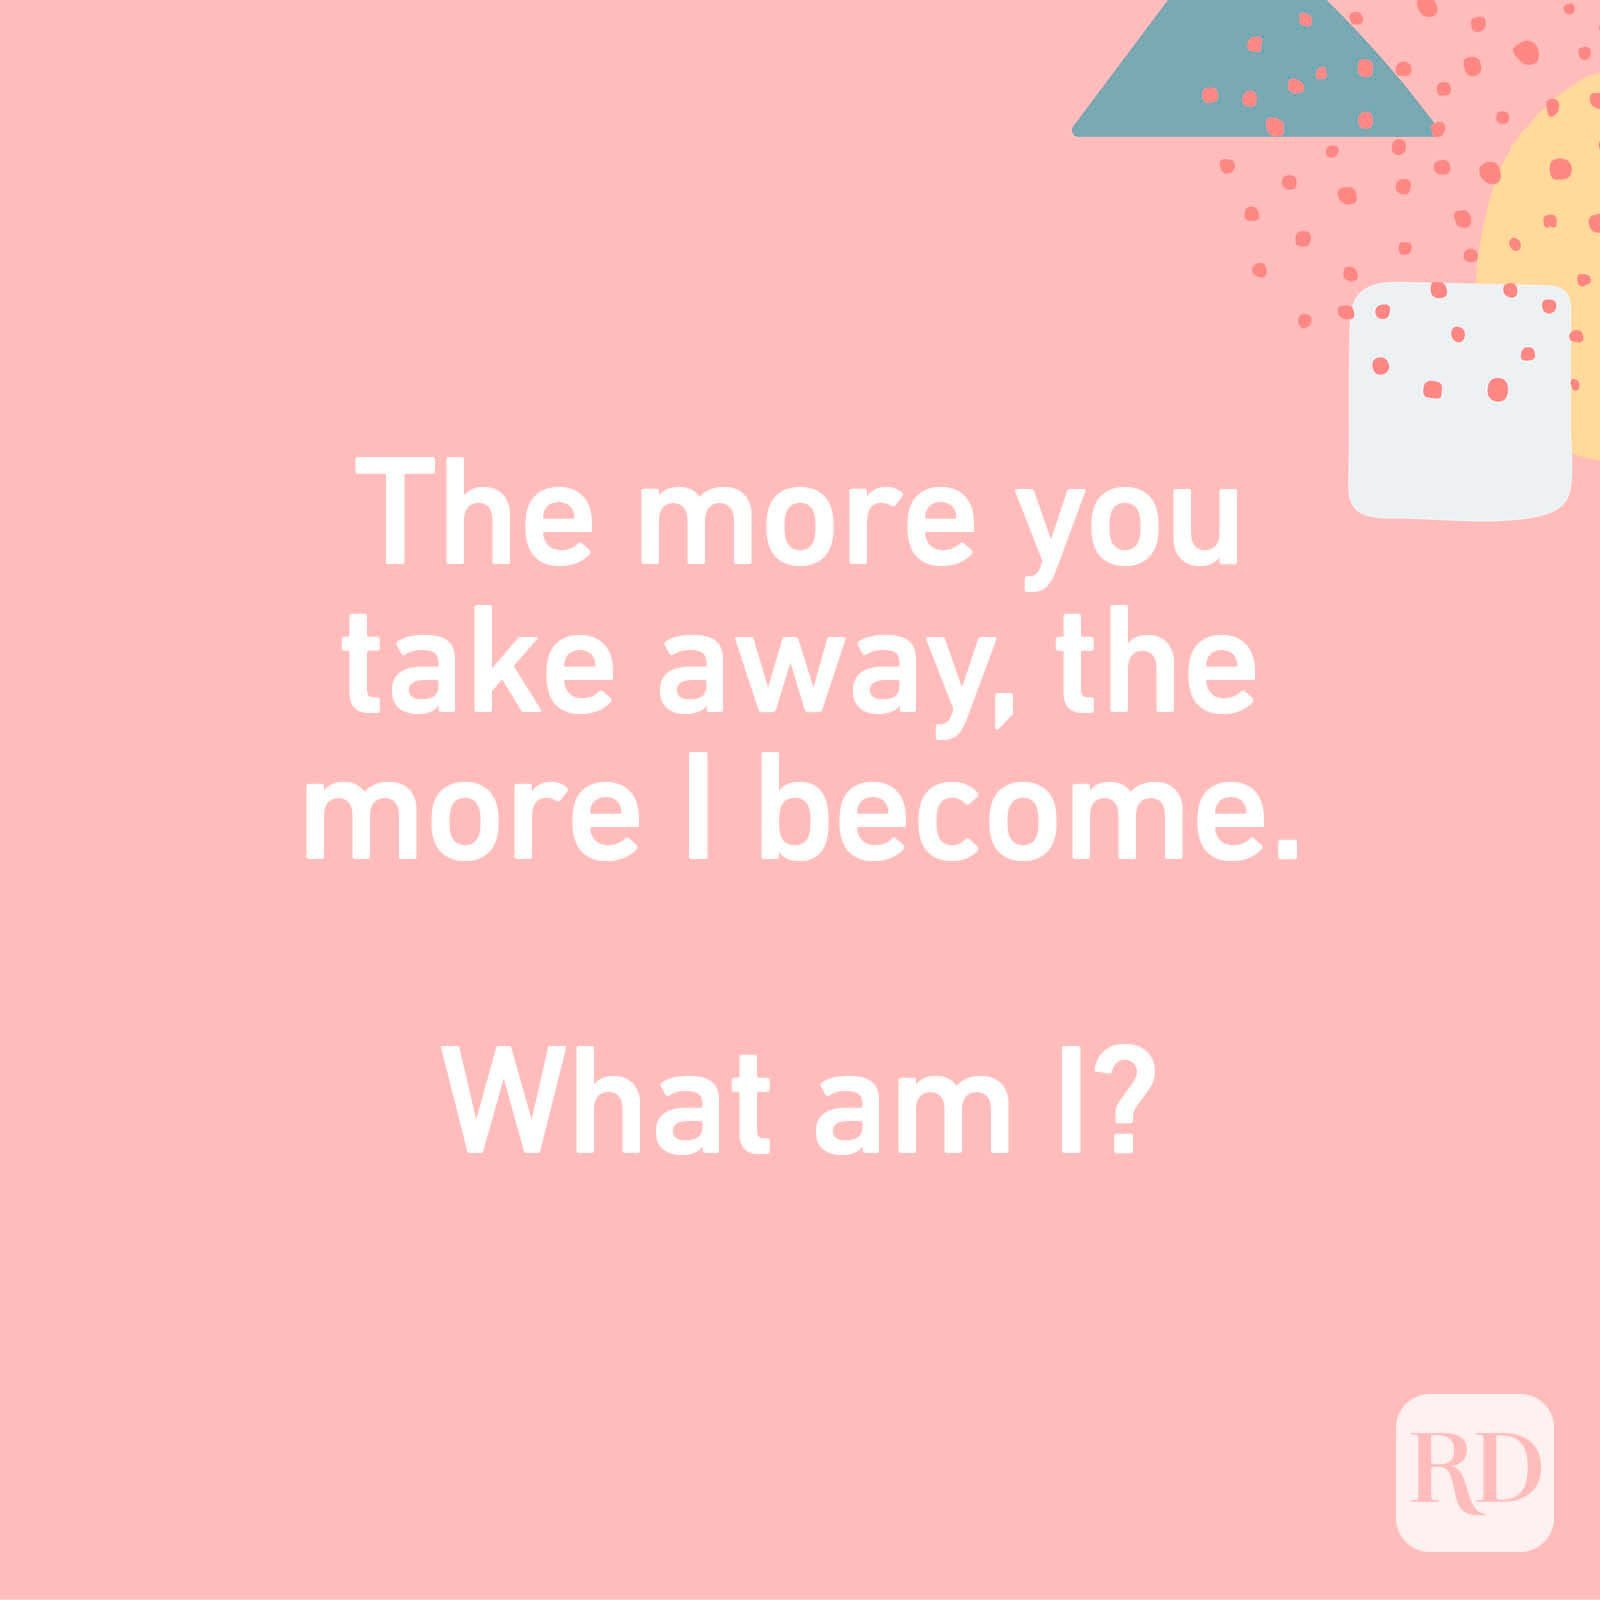 The more you take away, the more I become. What am I?